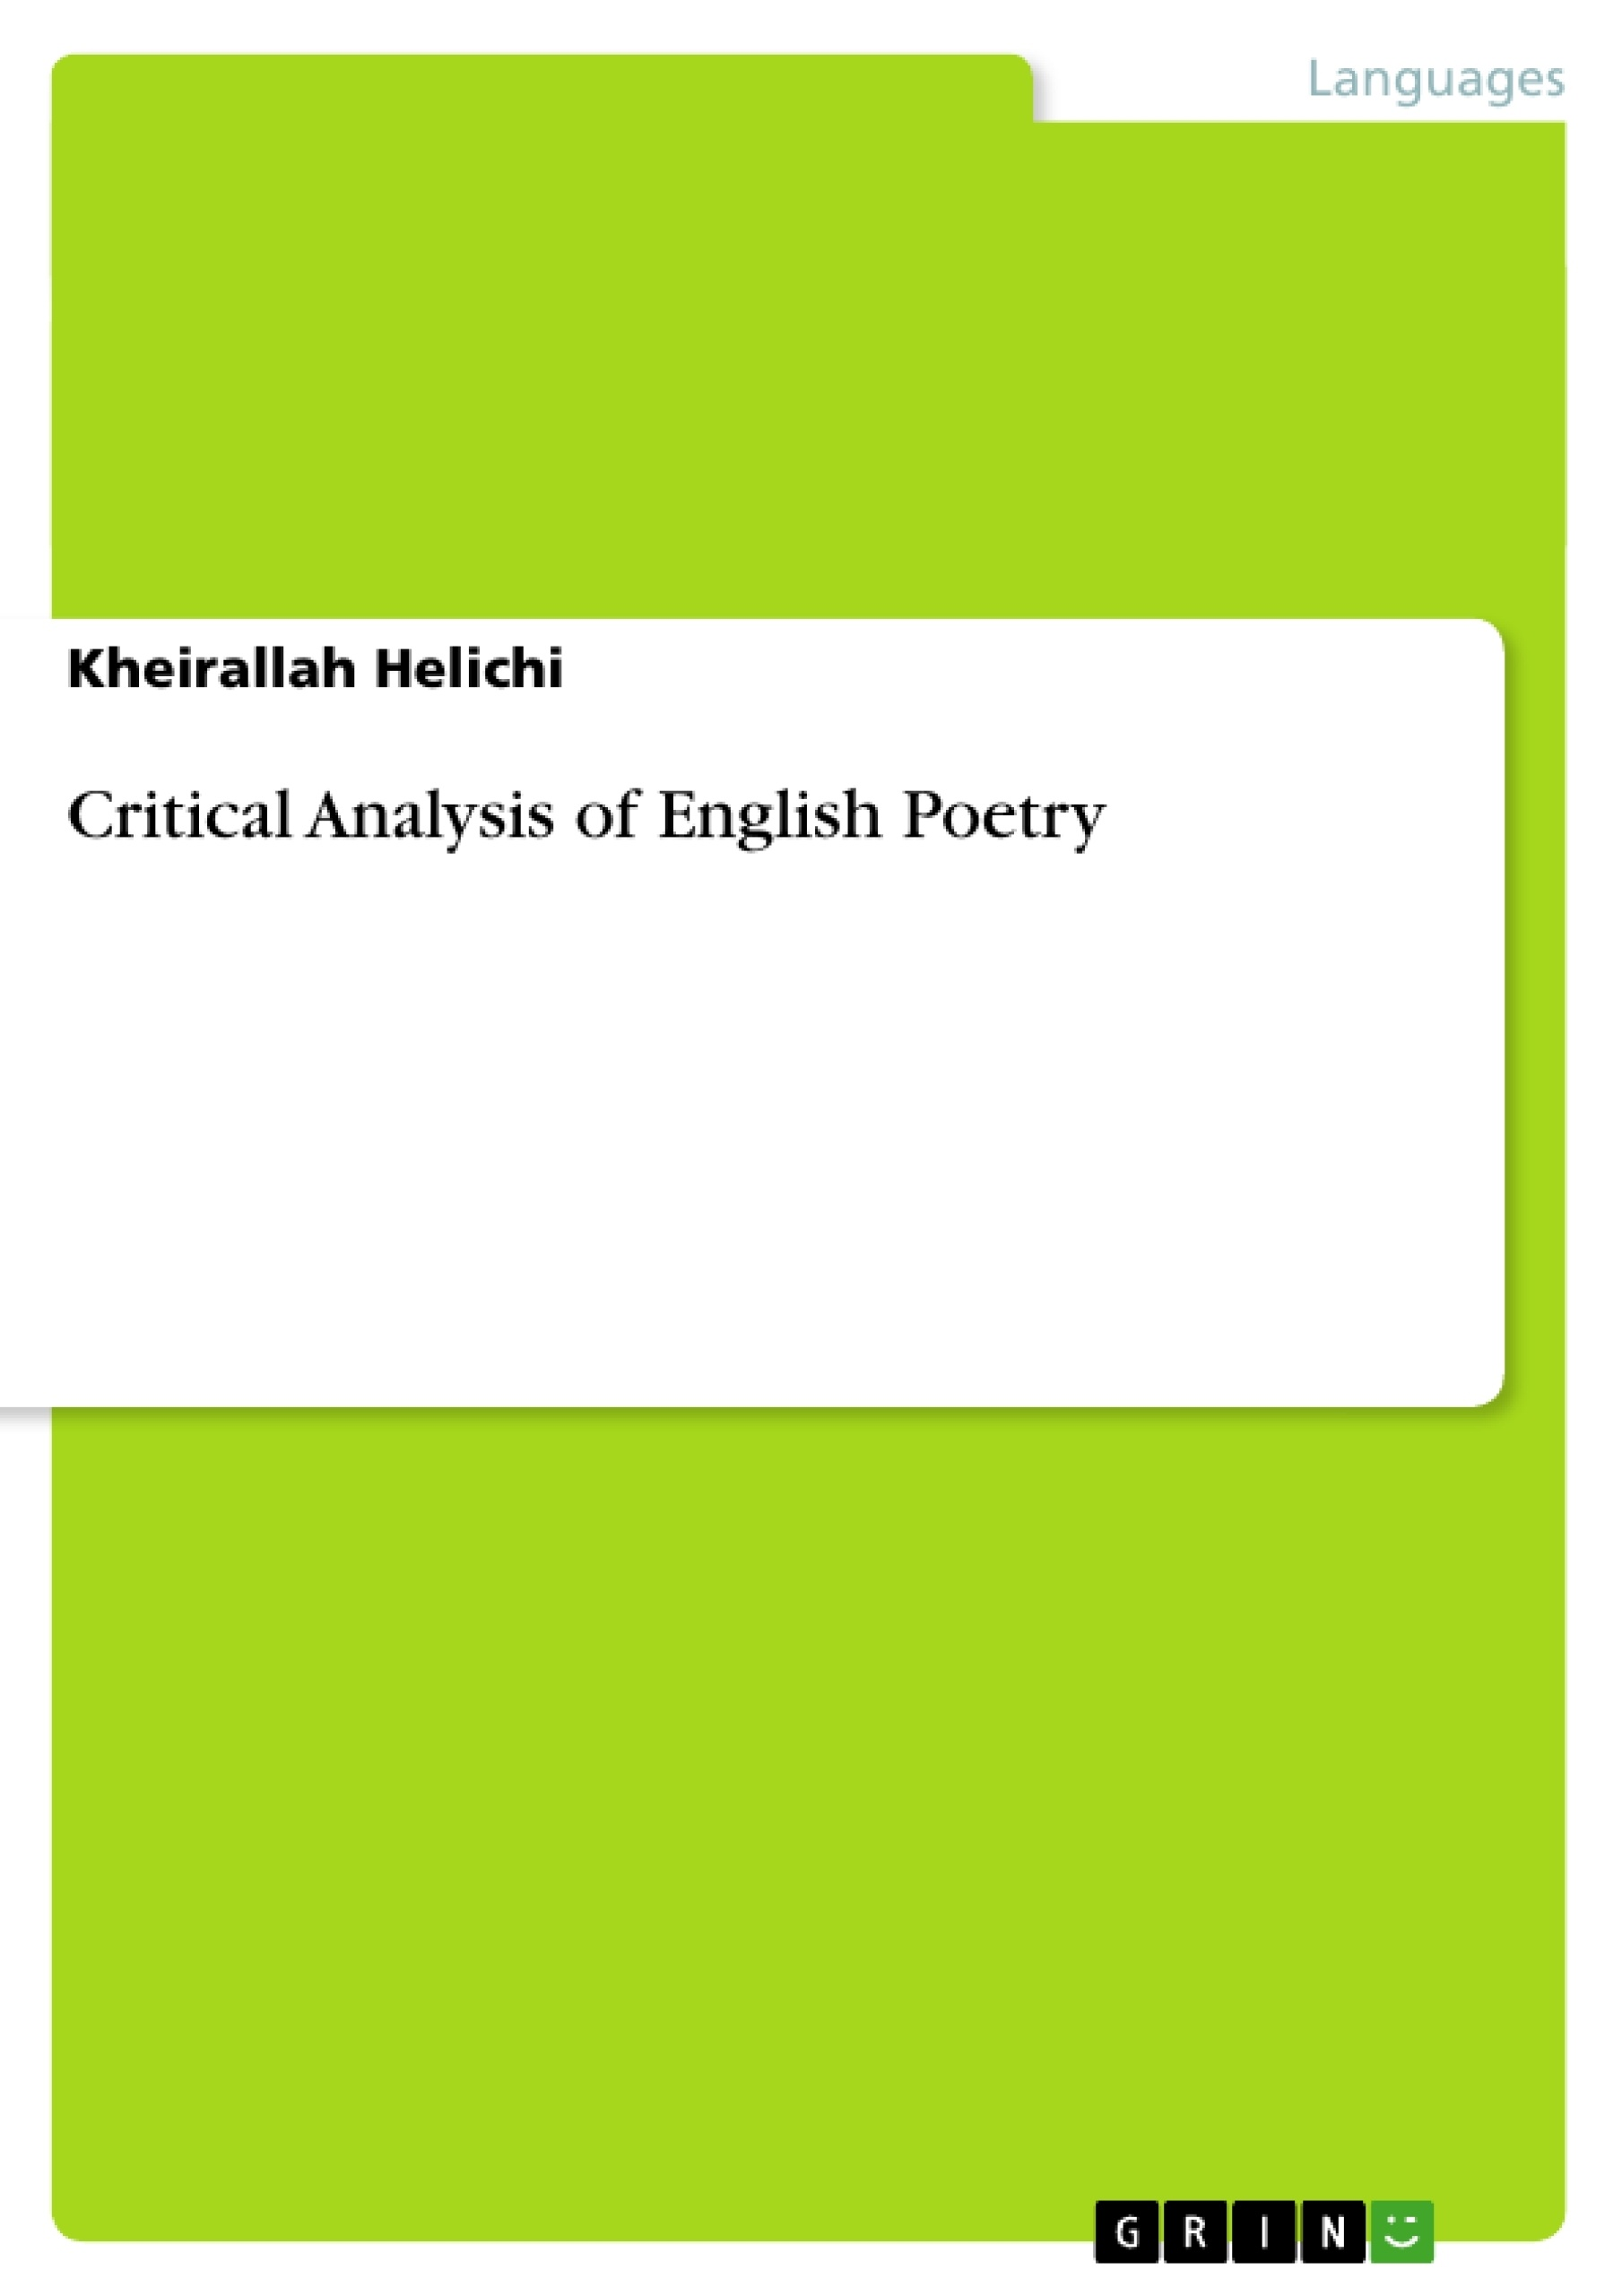 critical analysis of english poetry publish your master s thesis critical analysis of english poetry publish your master s thesis bachelor s thesis essay or term paper